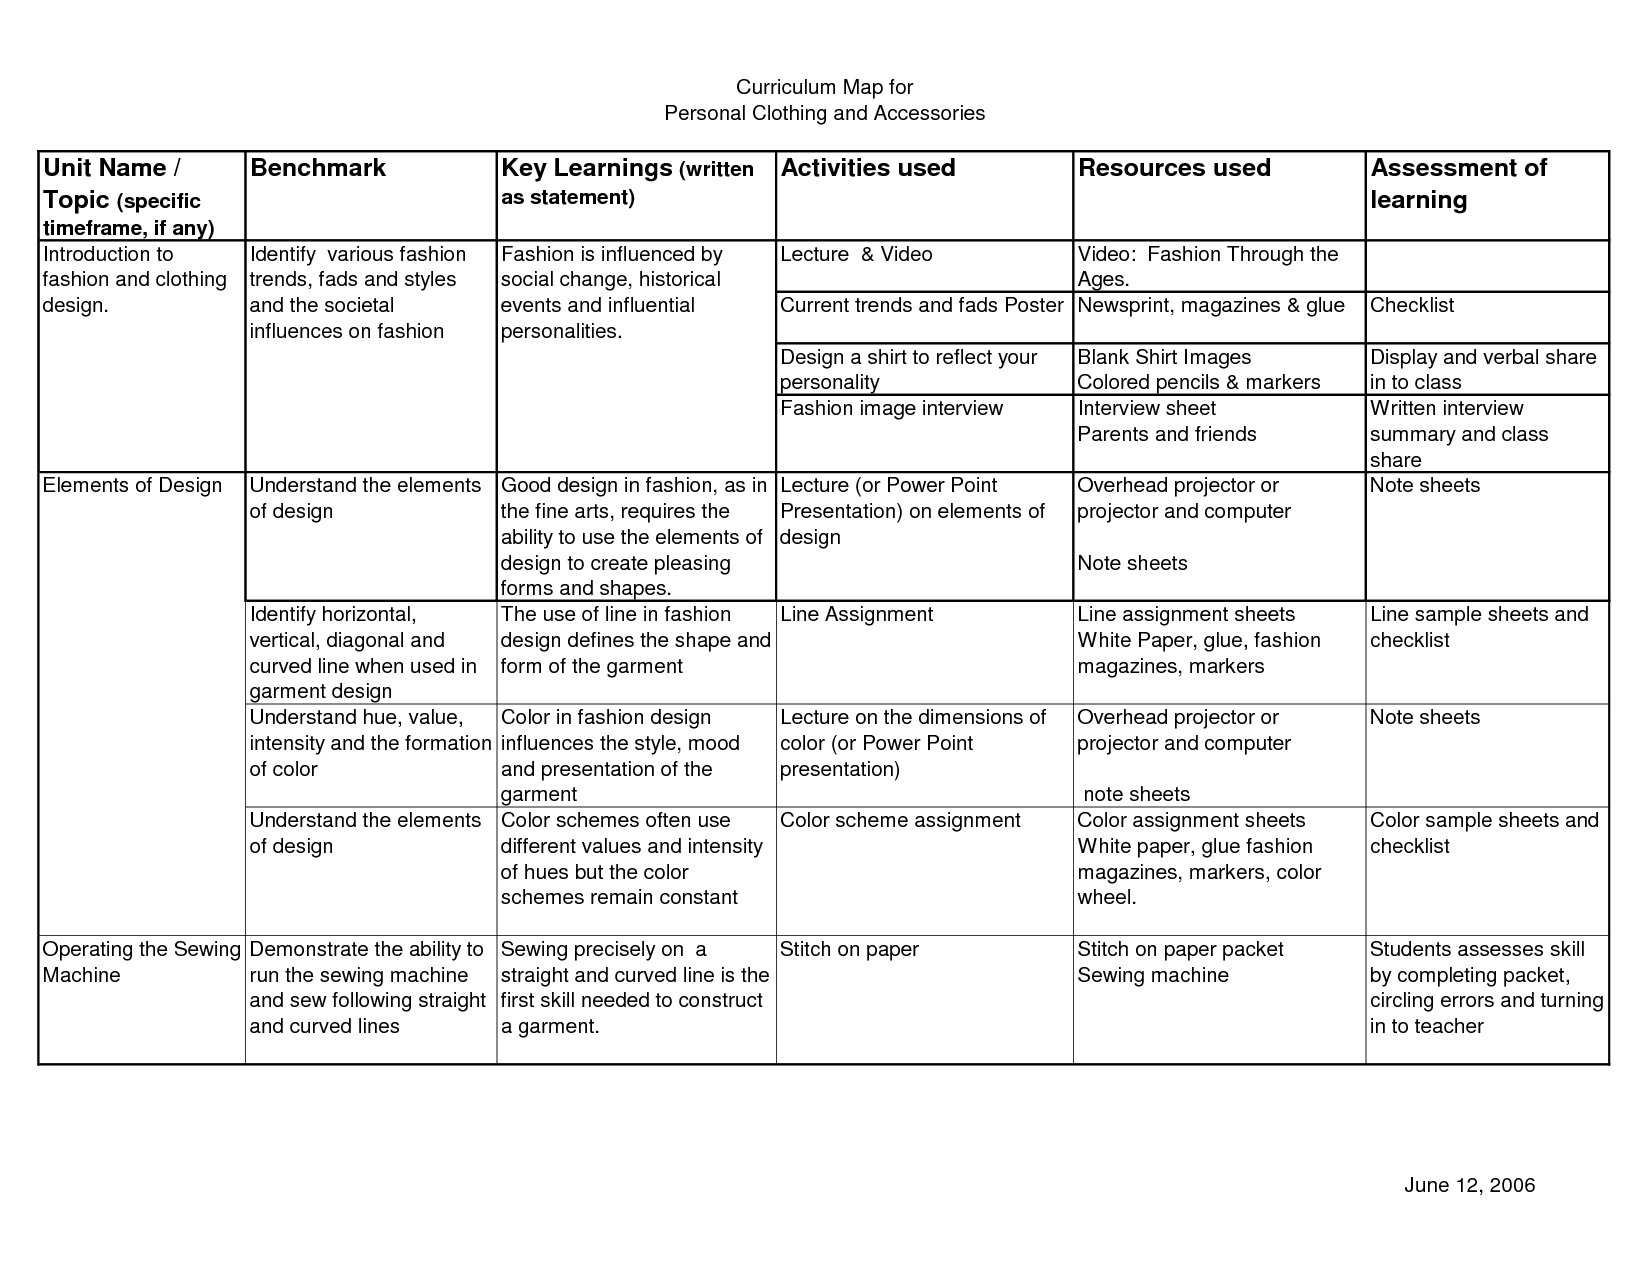 Blank Curriculum Map Template  Blank Color Wheel Worksheets Regarding Blank Curriculum Map Template